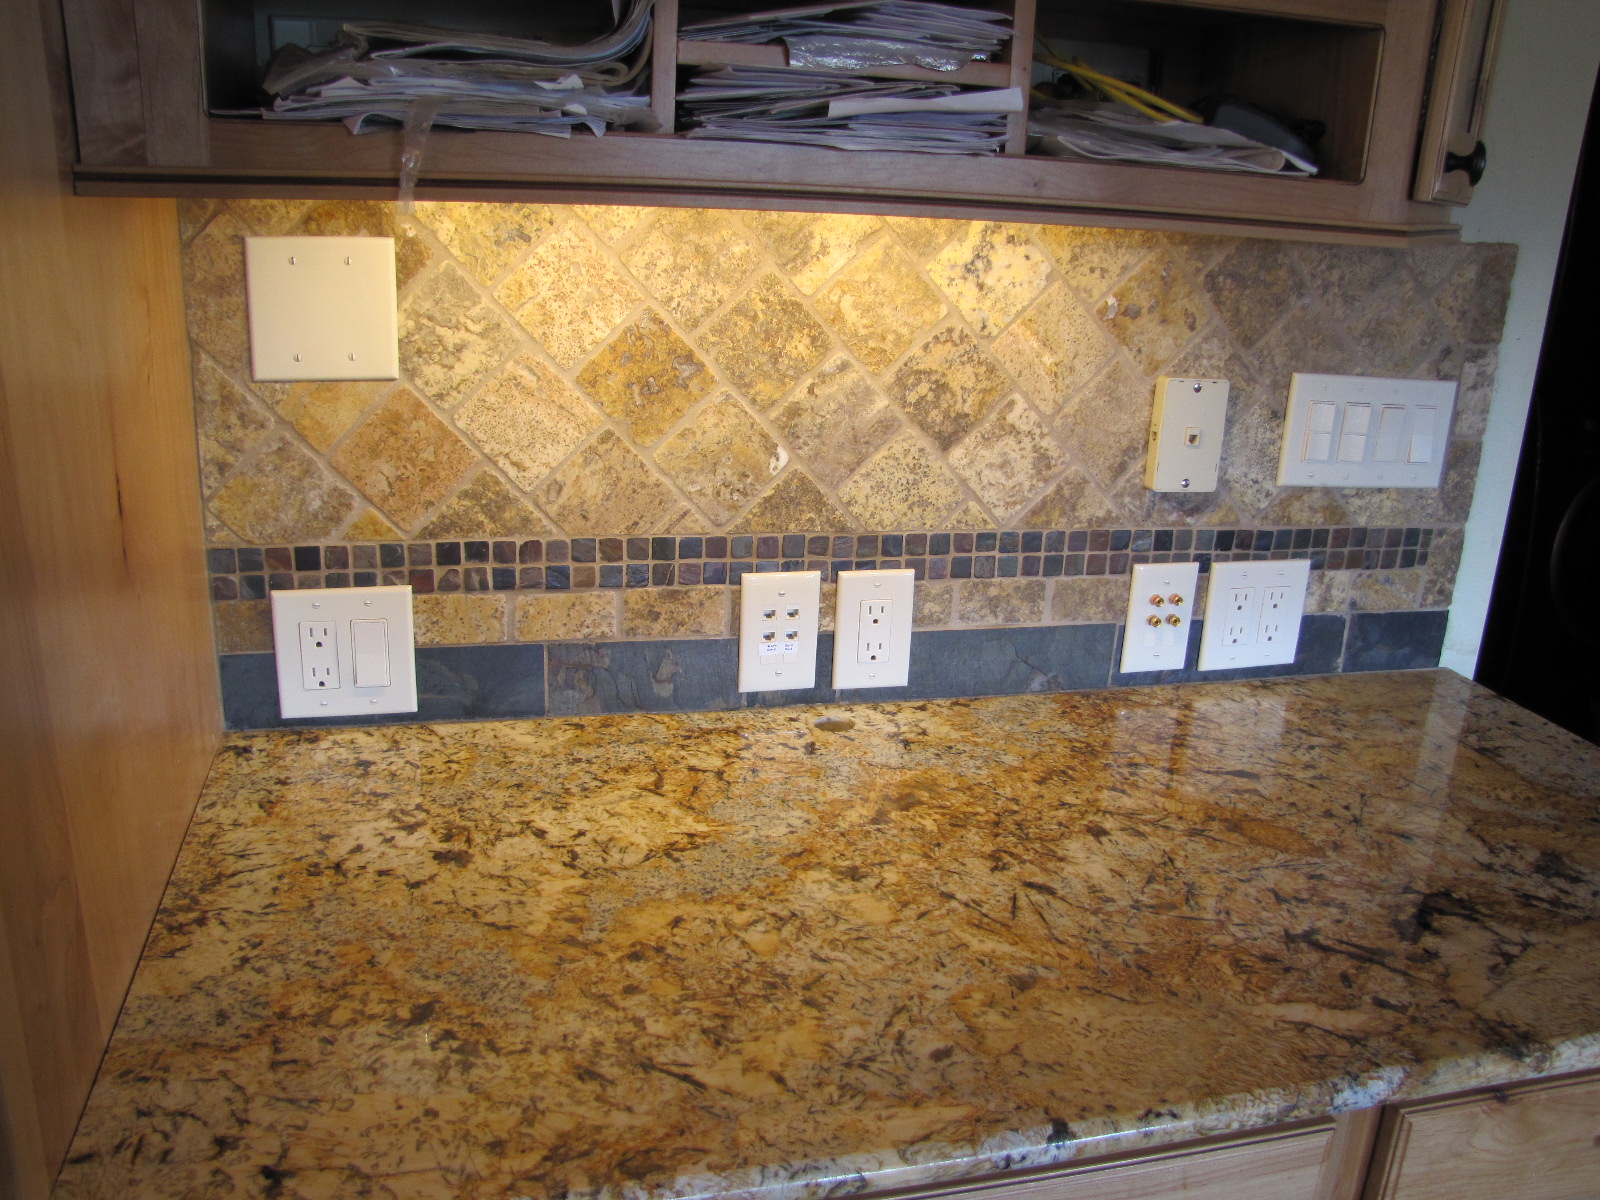 100 tumbled marble kitchen backsplash subway tile backsplash tile a marble install subway Stone backsplash tile